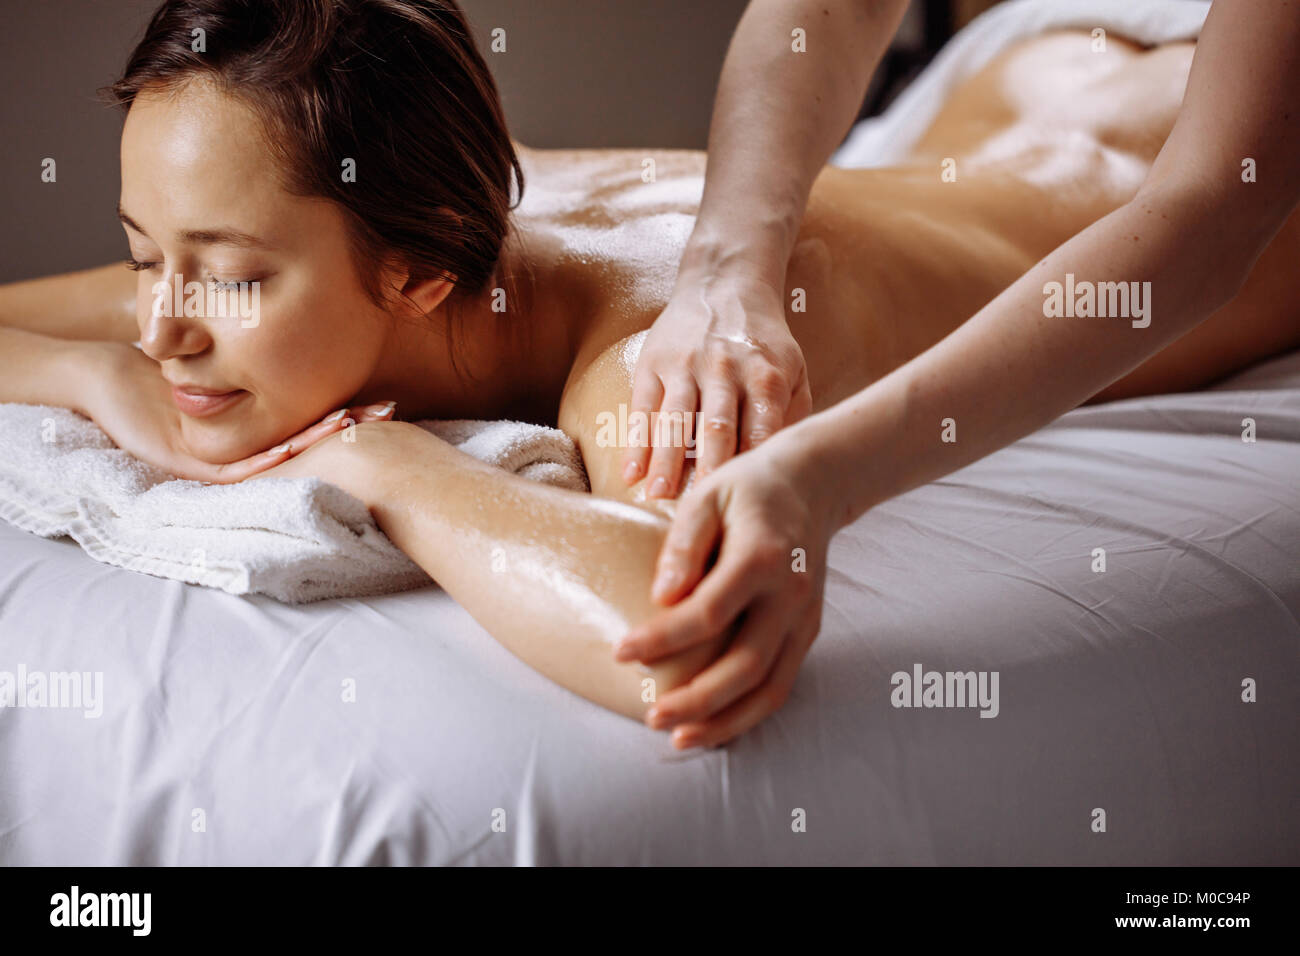 Salon Massage Body Body Spa Body Massage Treatment Woman Having Massage In The Spa